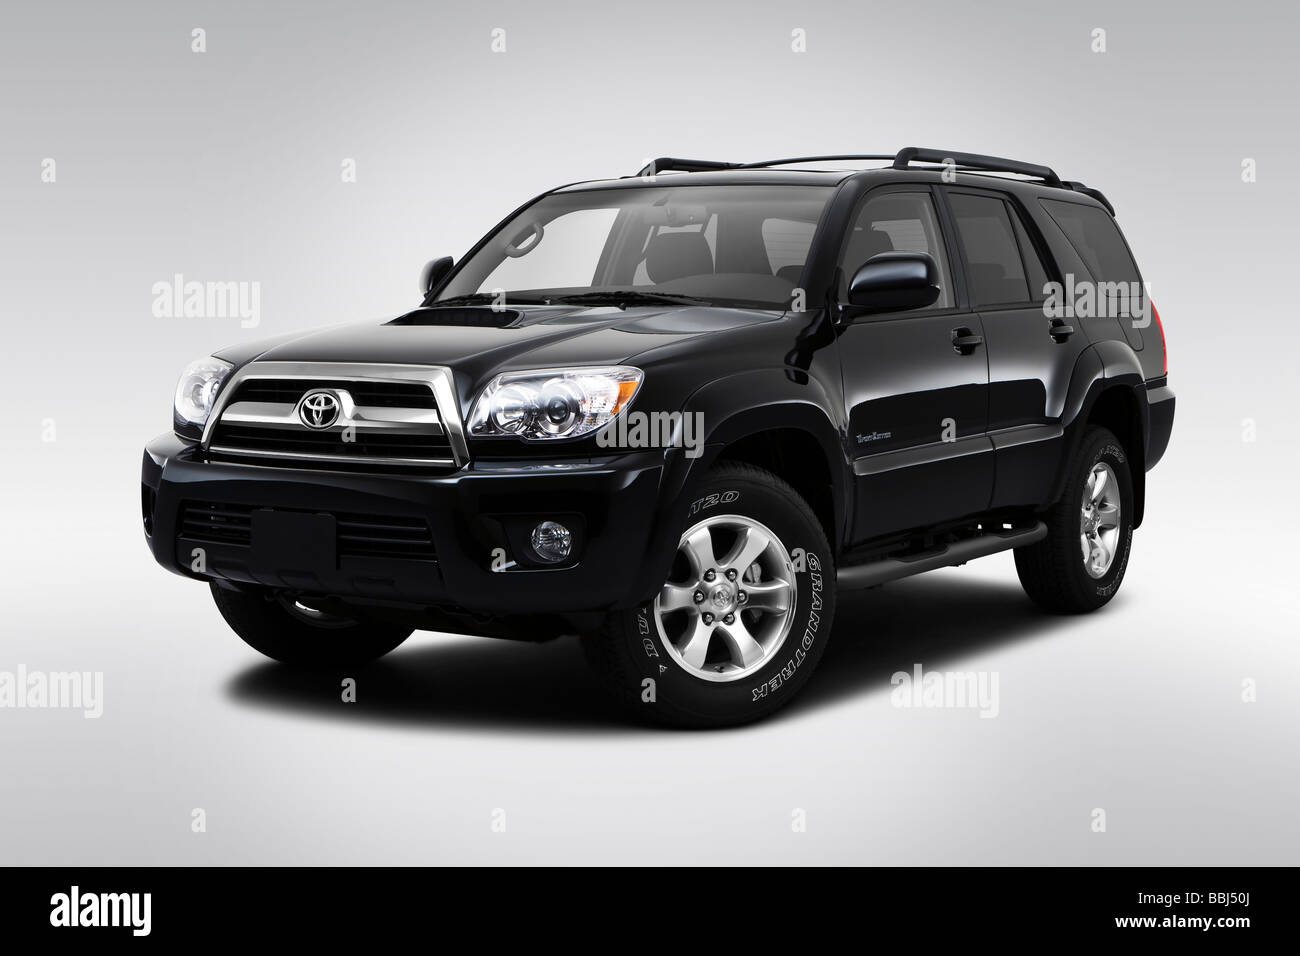 2009 Toyota 4runner Sport In Black Front Angle View Stock Photo Alamy